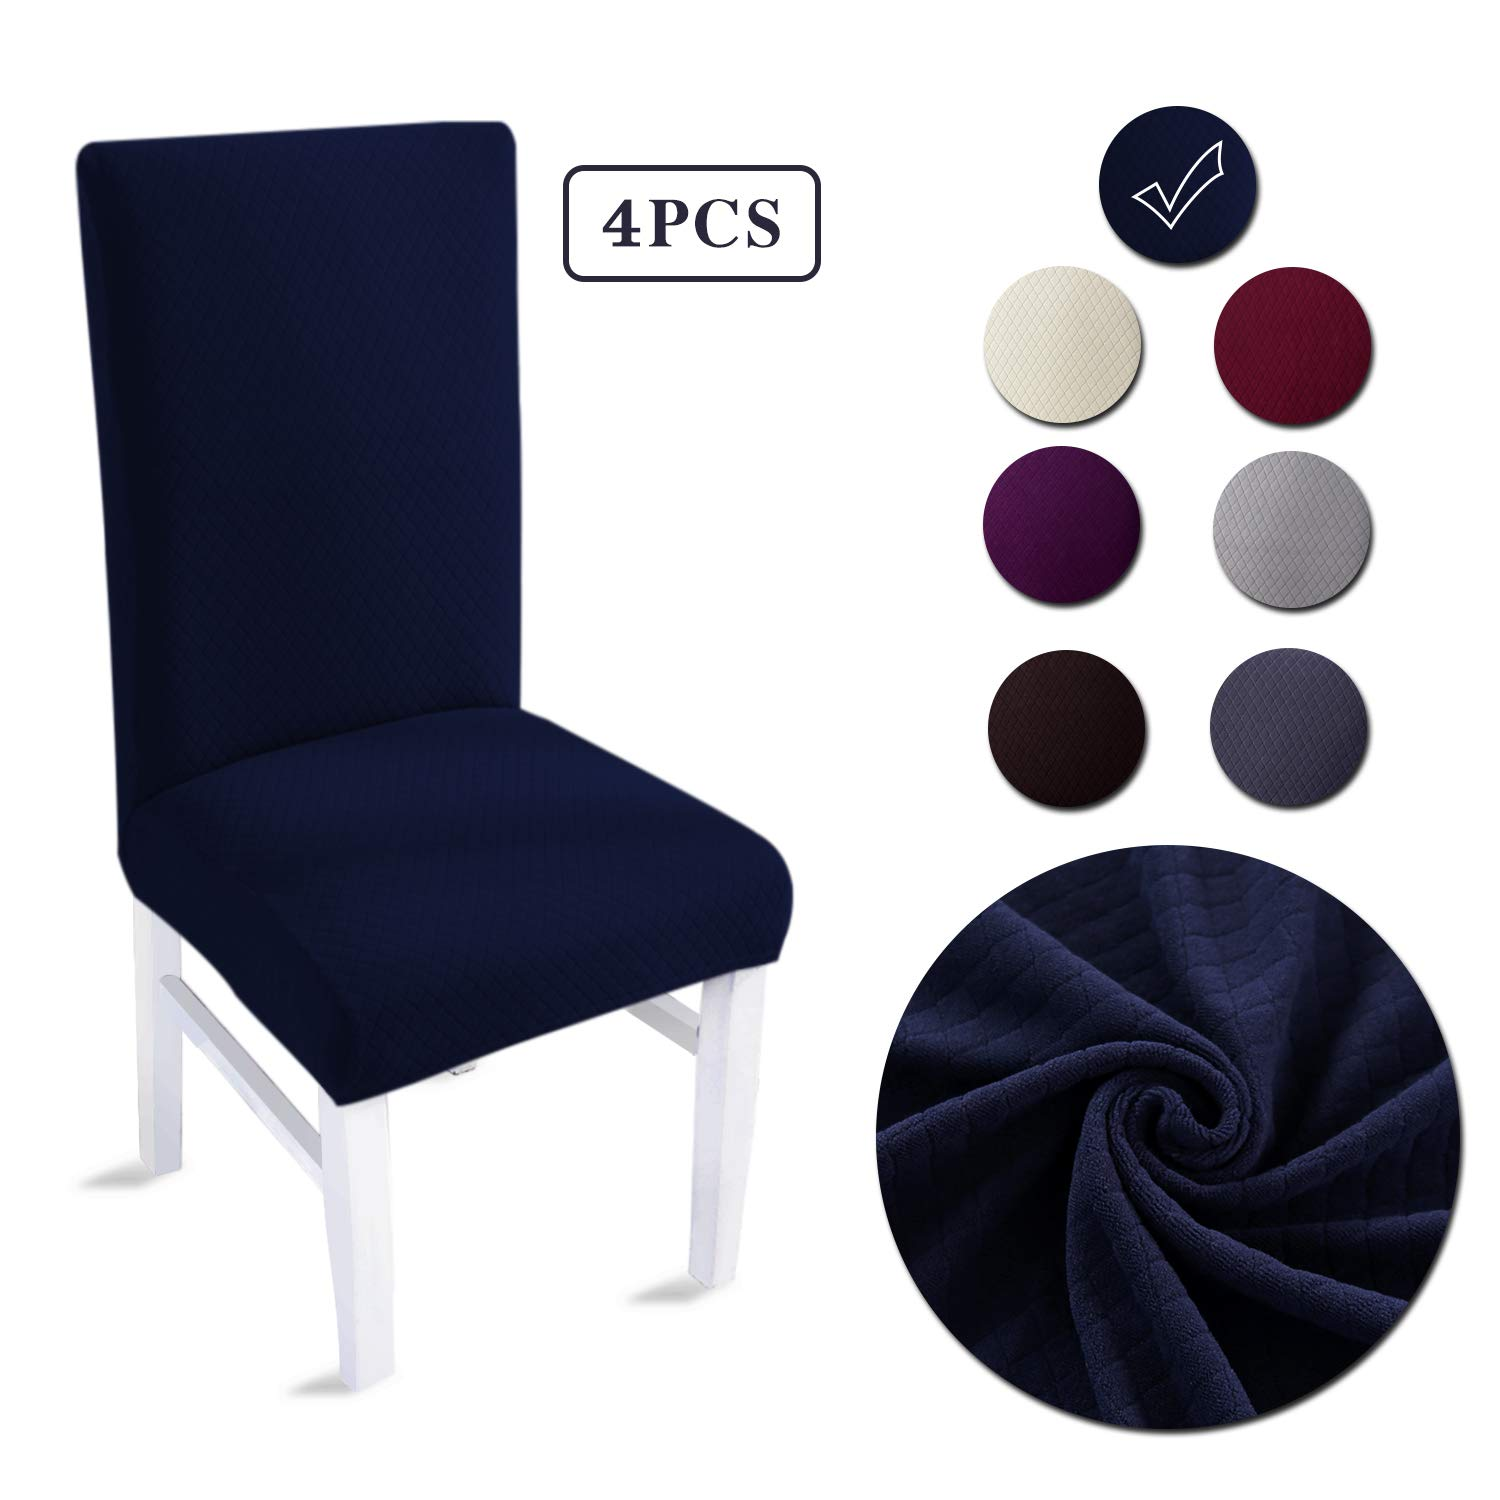 LAIKEUP Dining Room Chair Covers Set of 4 Navy Spandex Stretch Fabric Dining Chair Seat Protector Removable Washable Elastic Chair Slipcover for Home,Hotels,Wedding,Banquet,Party